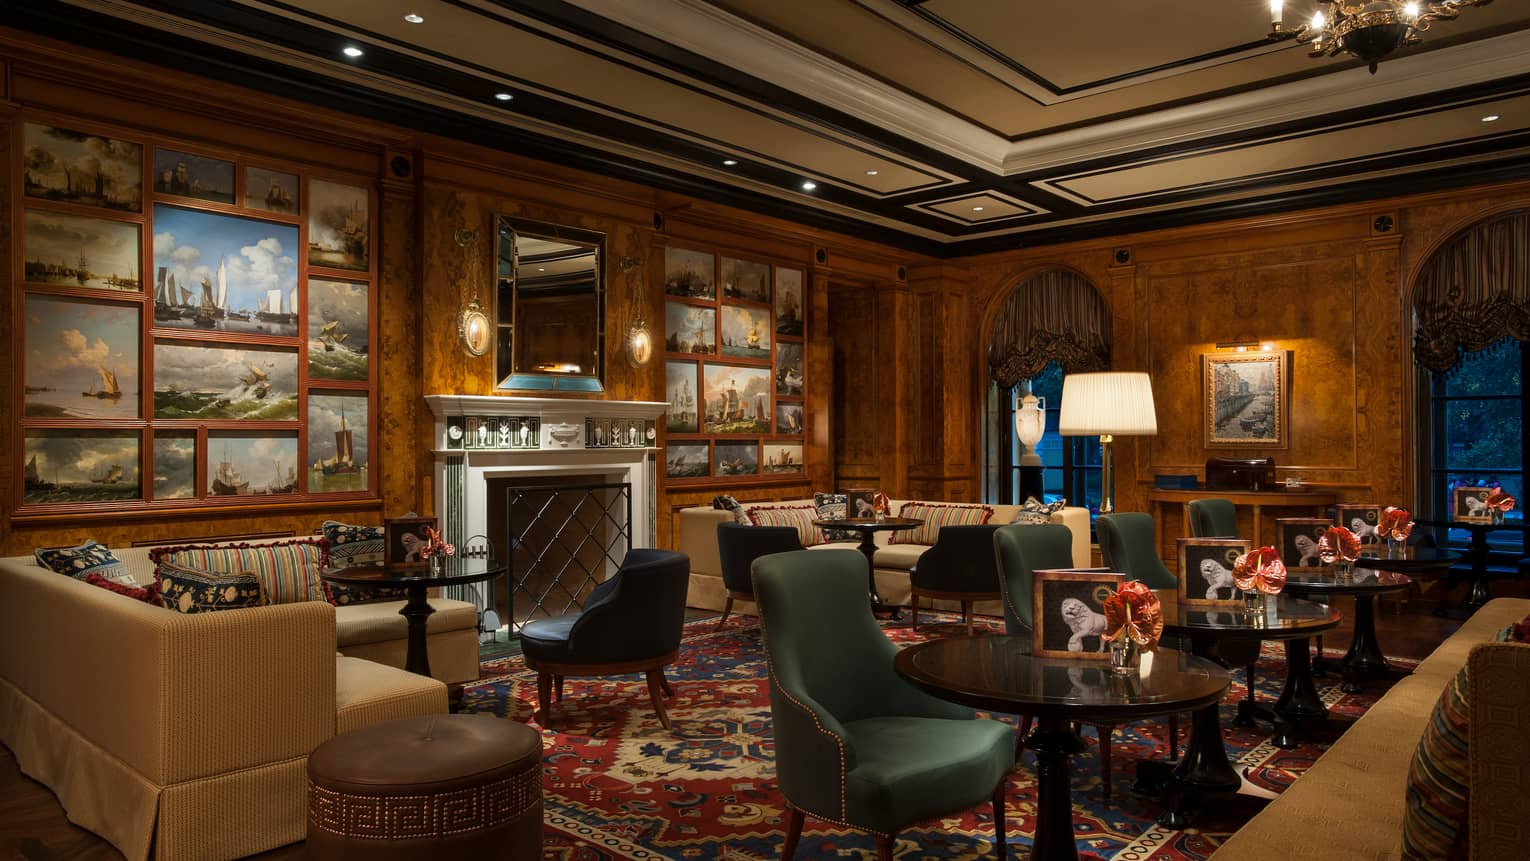 Xander Bar lounge with sofas, green velvet chairs, murals of sailboats around fireplace mantle